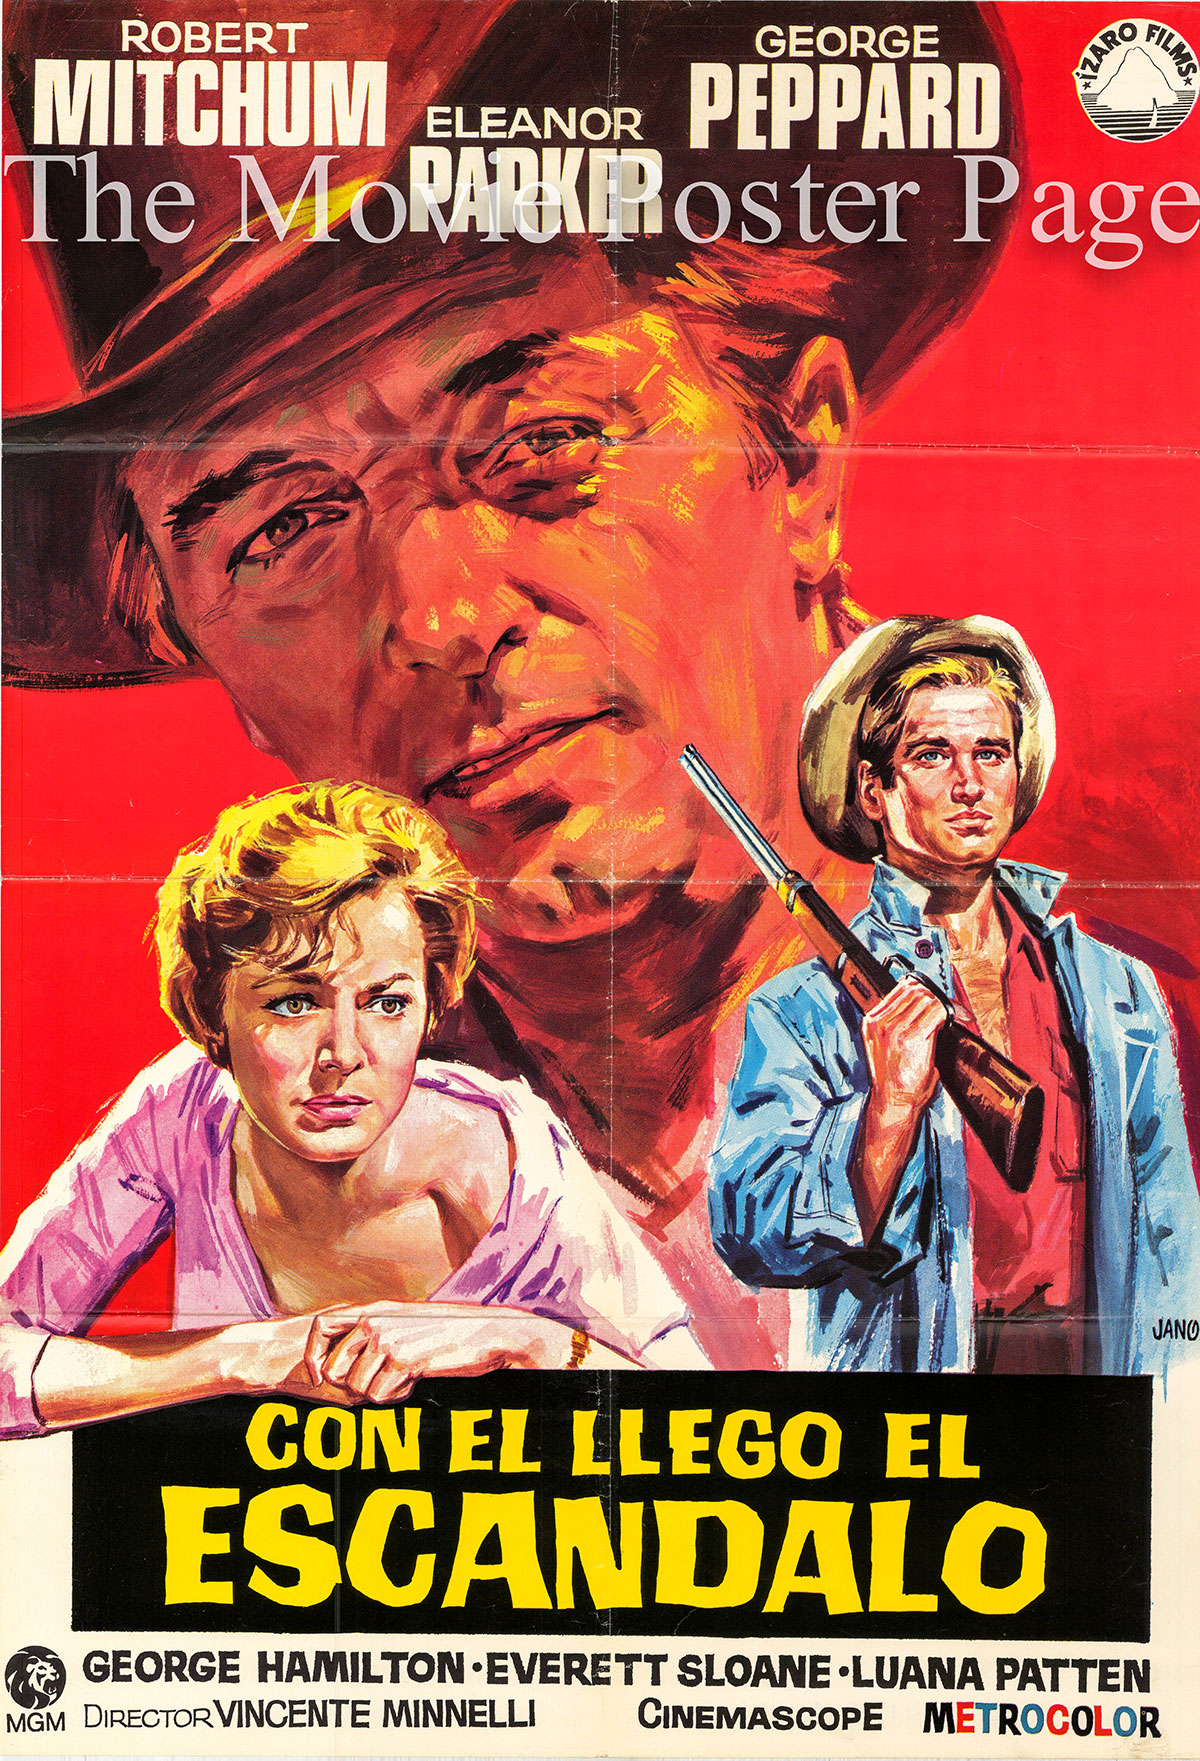 Pictured is a Spanish promotional one-sheet poster for a 1972 rerelease of the 1960 Vincente Minnelli film Home from the Hill starring Robert Mitchum.